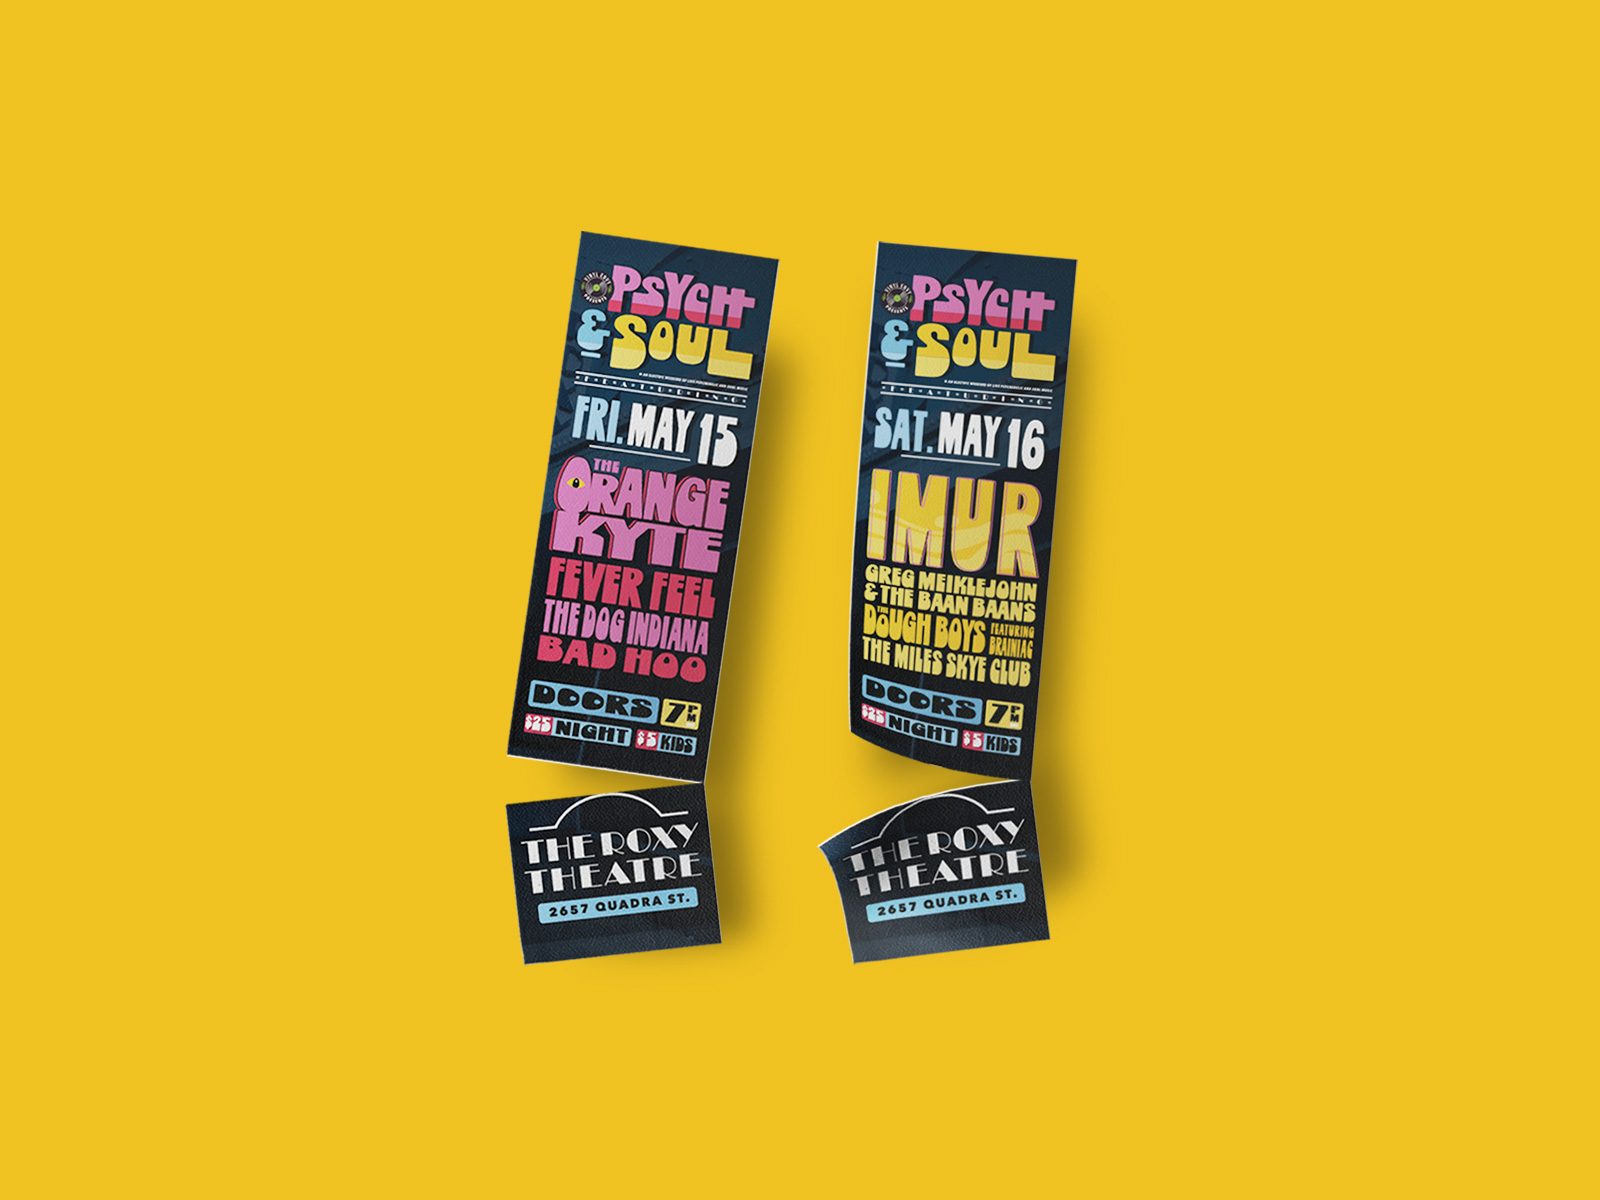 ticket design for for psych and soul music festival